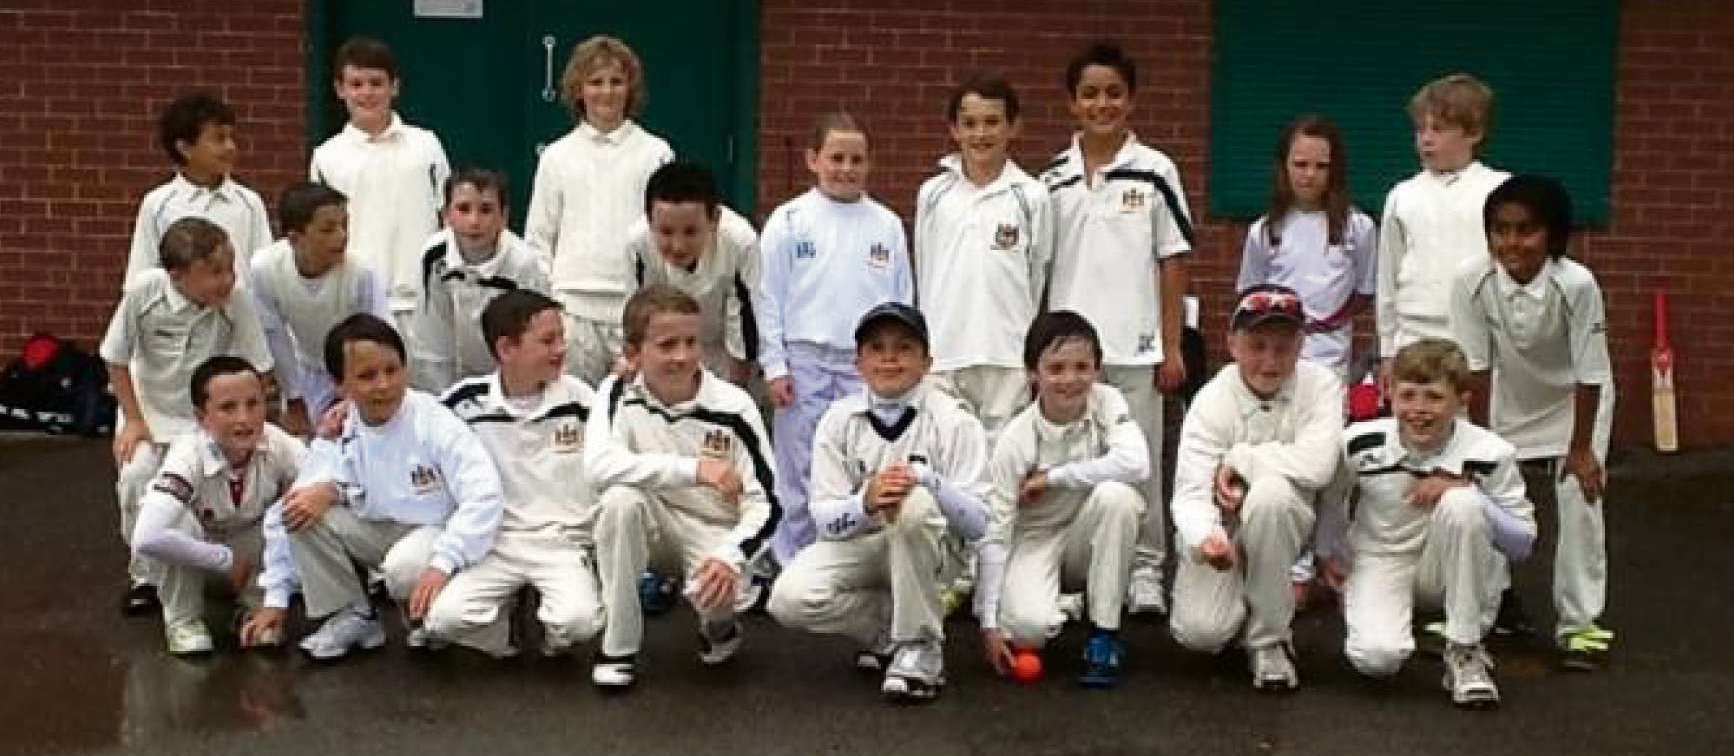 YOUNG STARS: Some of the young cricketers at Penarth Cricket Club whose Monday efforts were washed out by the rain.